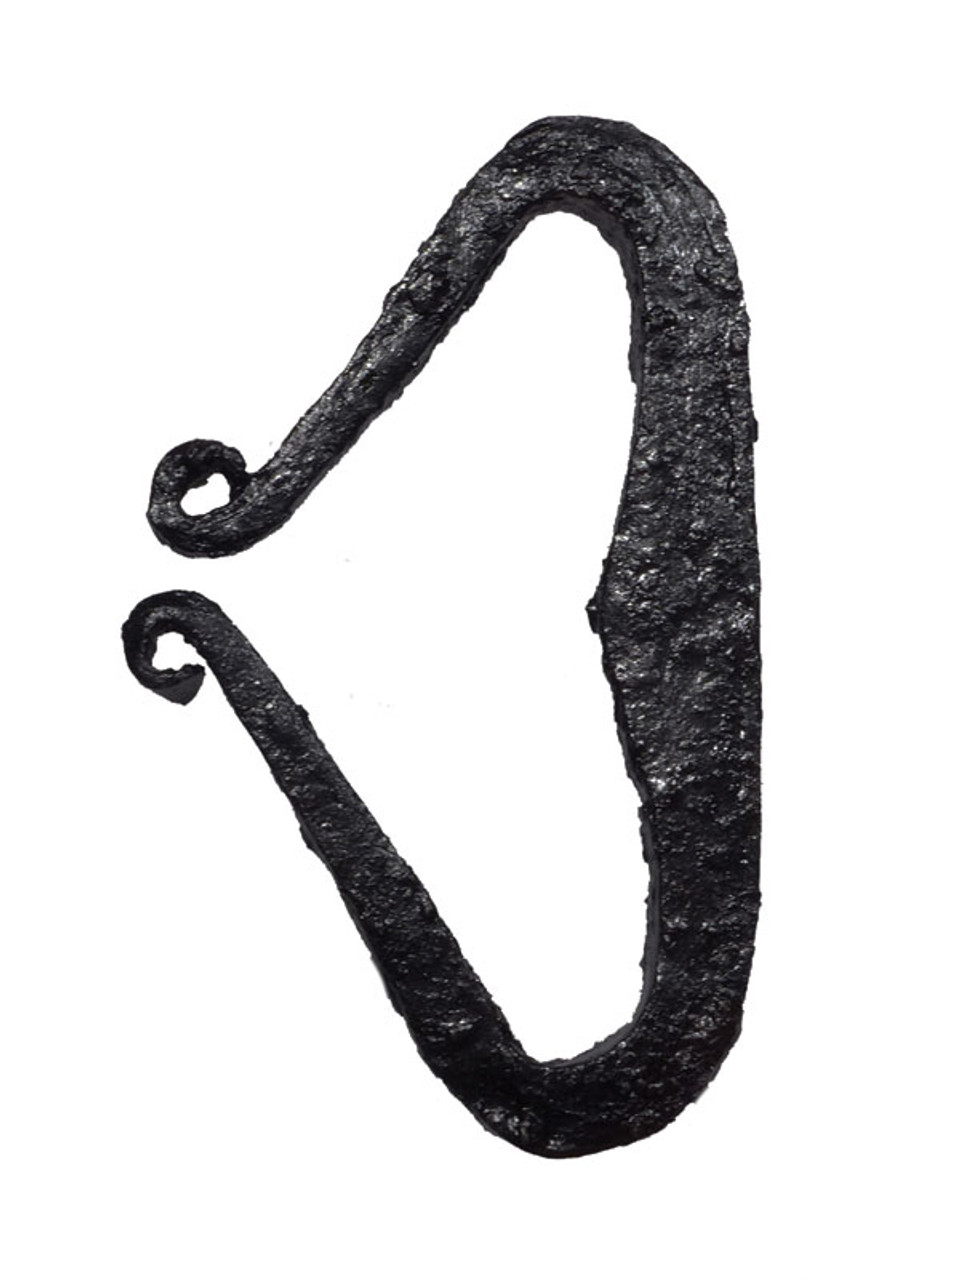 IRON FIRESTARTER FIRE STRIKER FROM THE BYZANTINE ROMAN MILITARY *R165